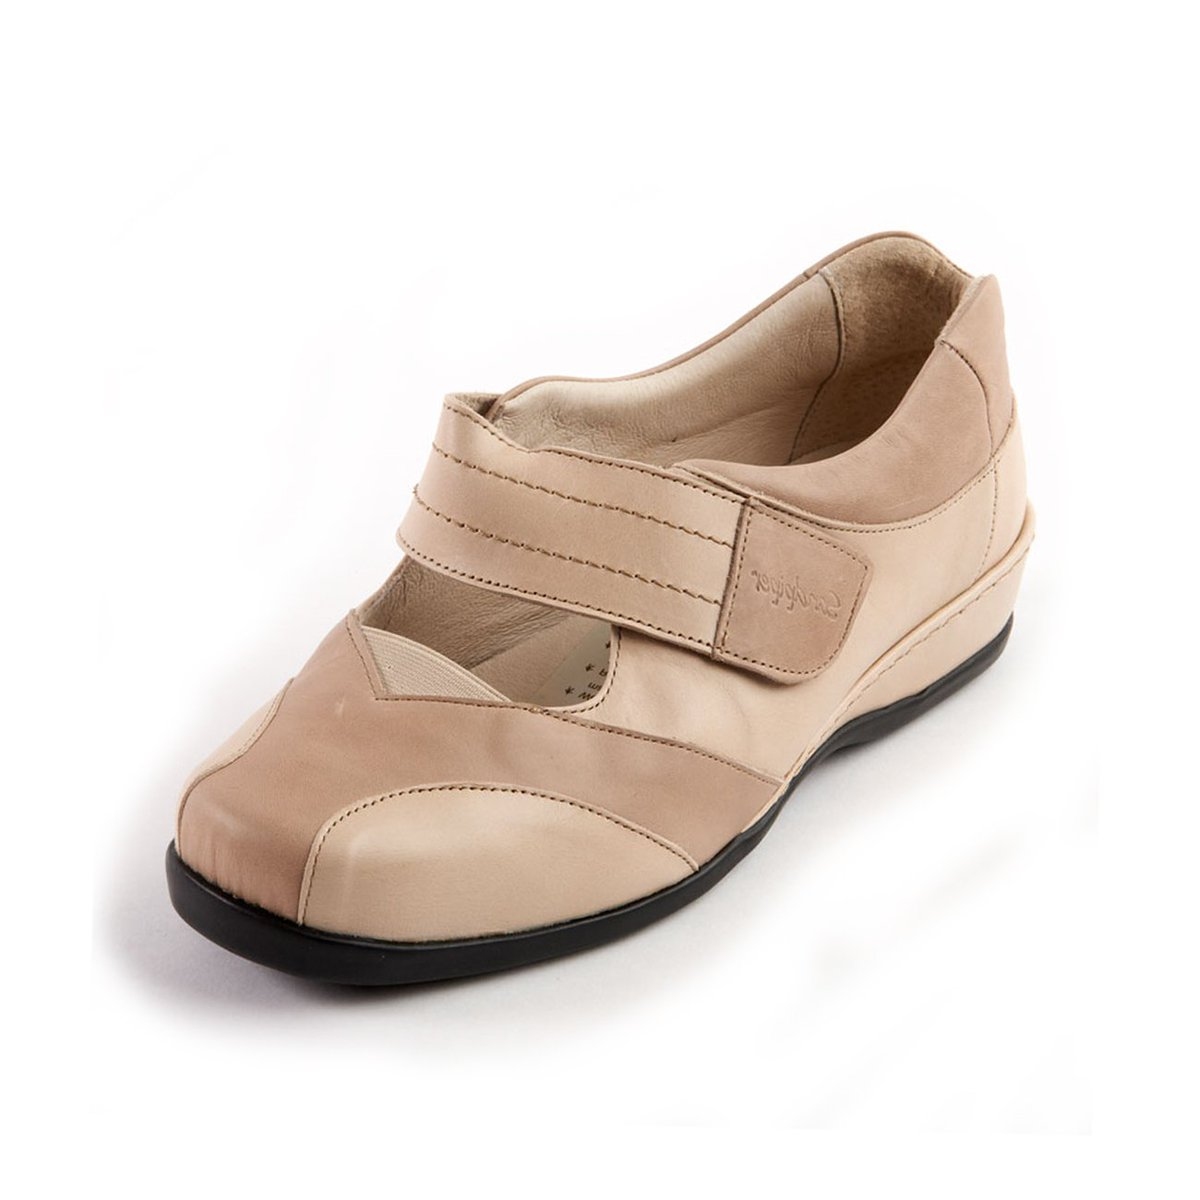 Welling Ladies Extra Wide Shoes (4E-6E